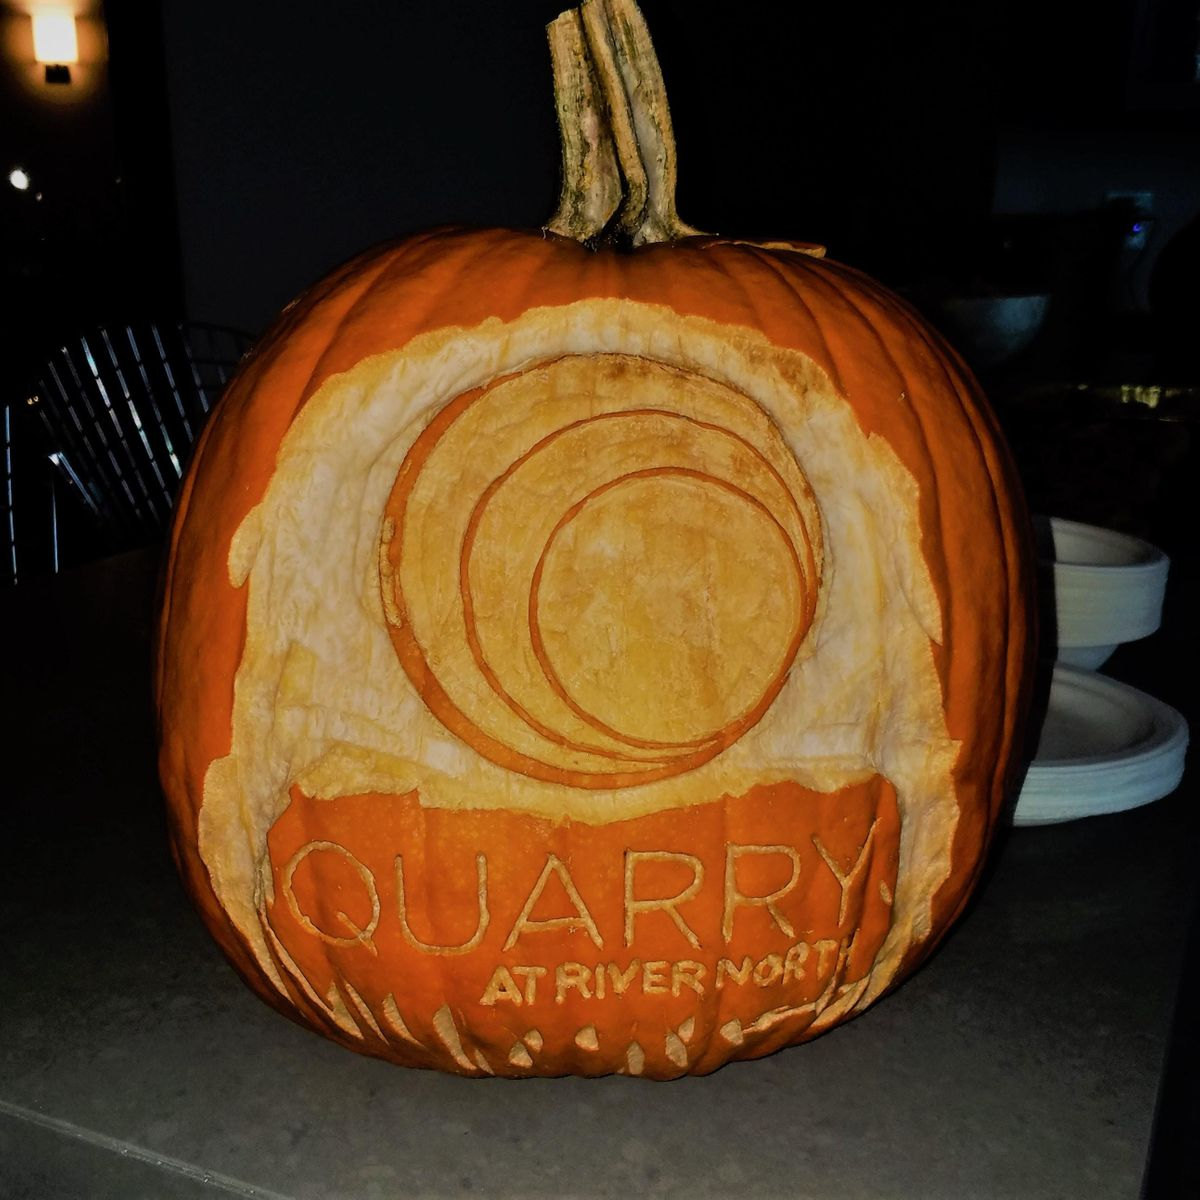 halloween party at quarry at river north, indianapolis